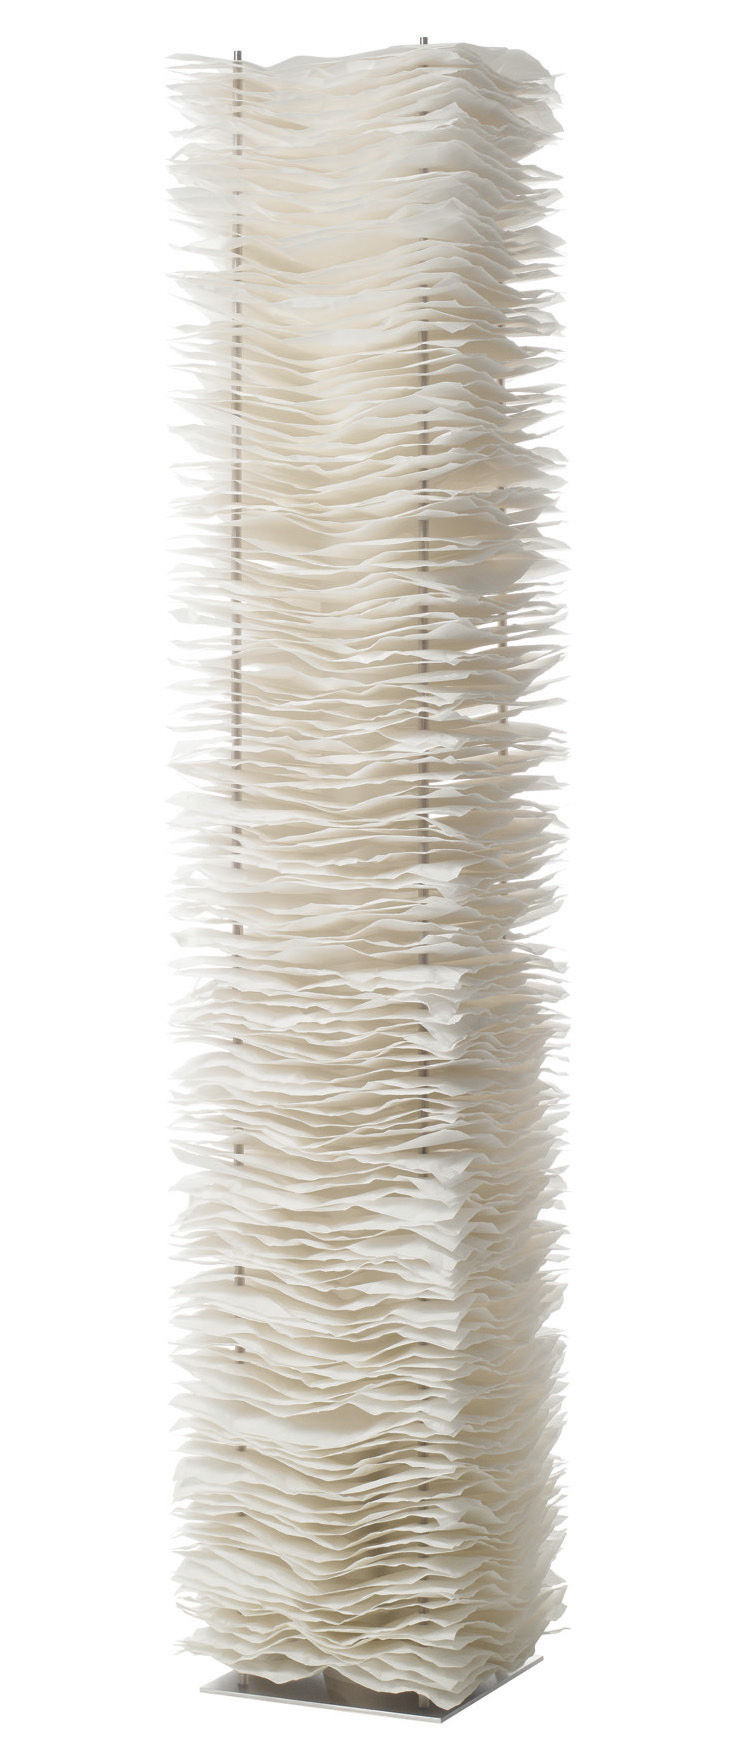 Lighting - Floor lamps - One by One Floor lamp by Belux - White - Polyester